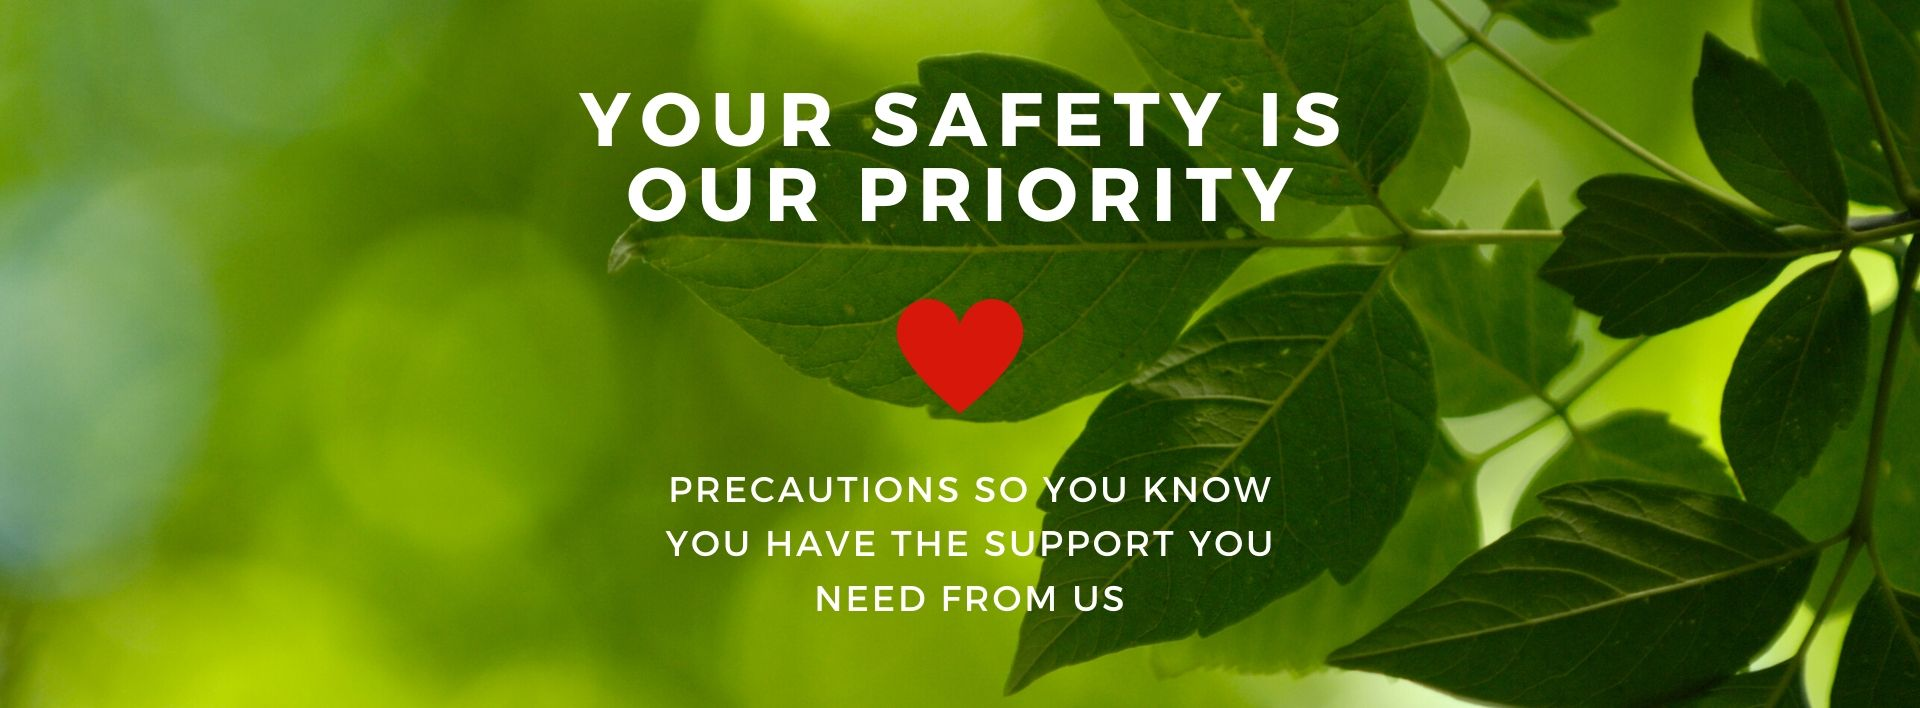 Your safety is our priority